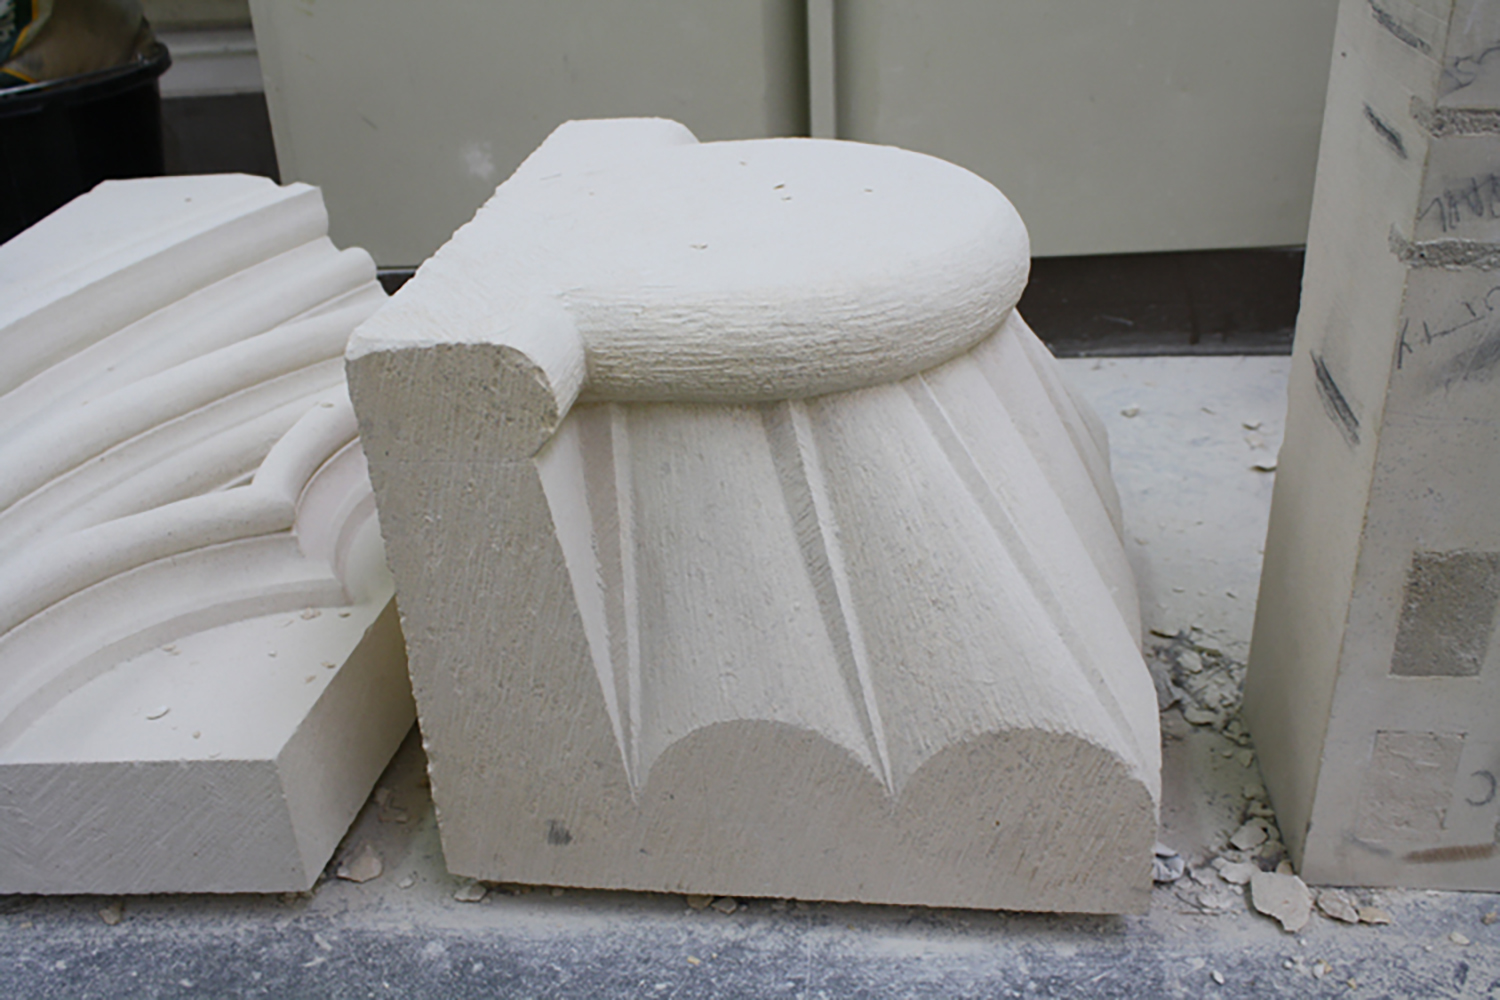 Figure 6: A modern carved capital in the masons' lodge at York Minster roughly finished with a claw chisel, photographed in the summer of 2014 by Julia Perratore.